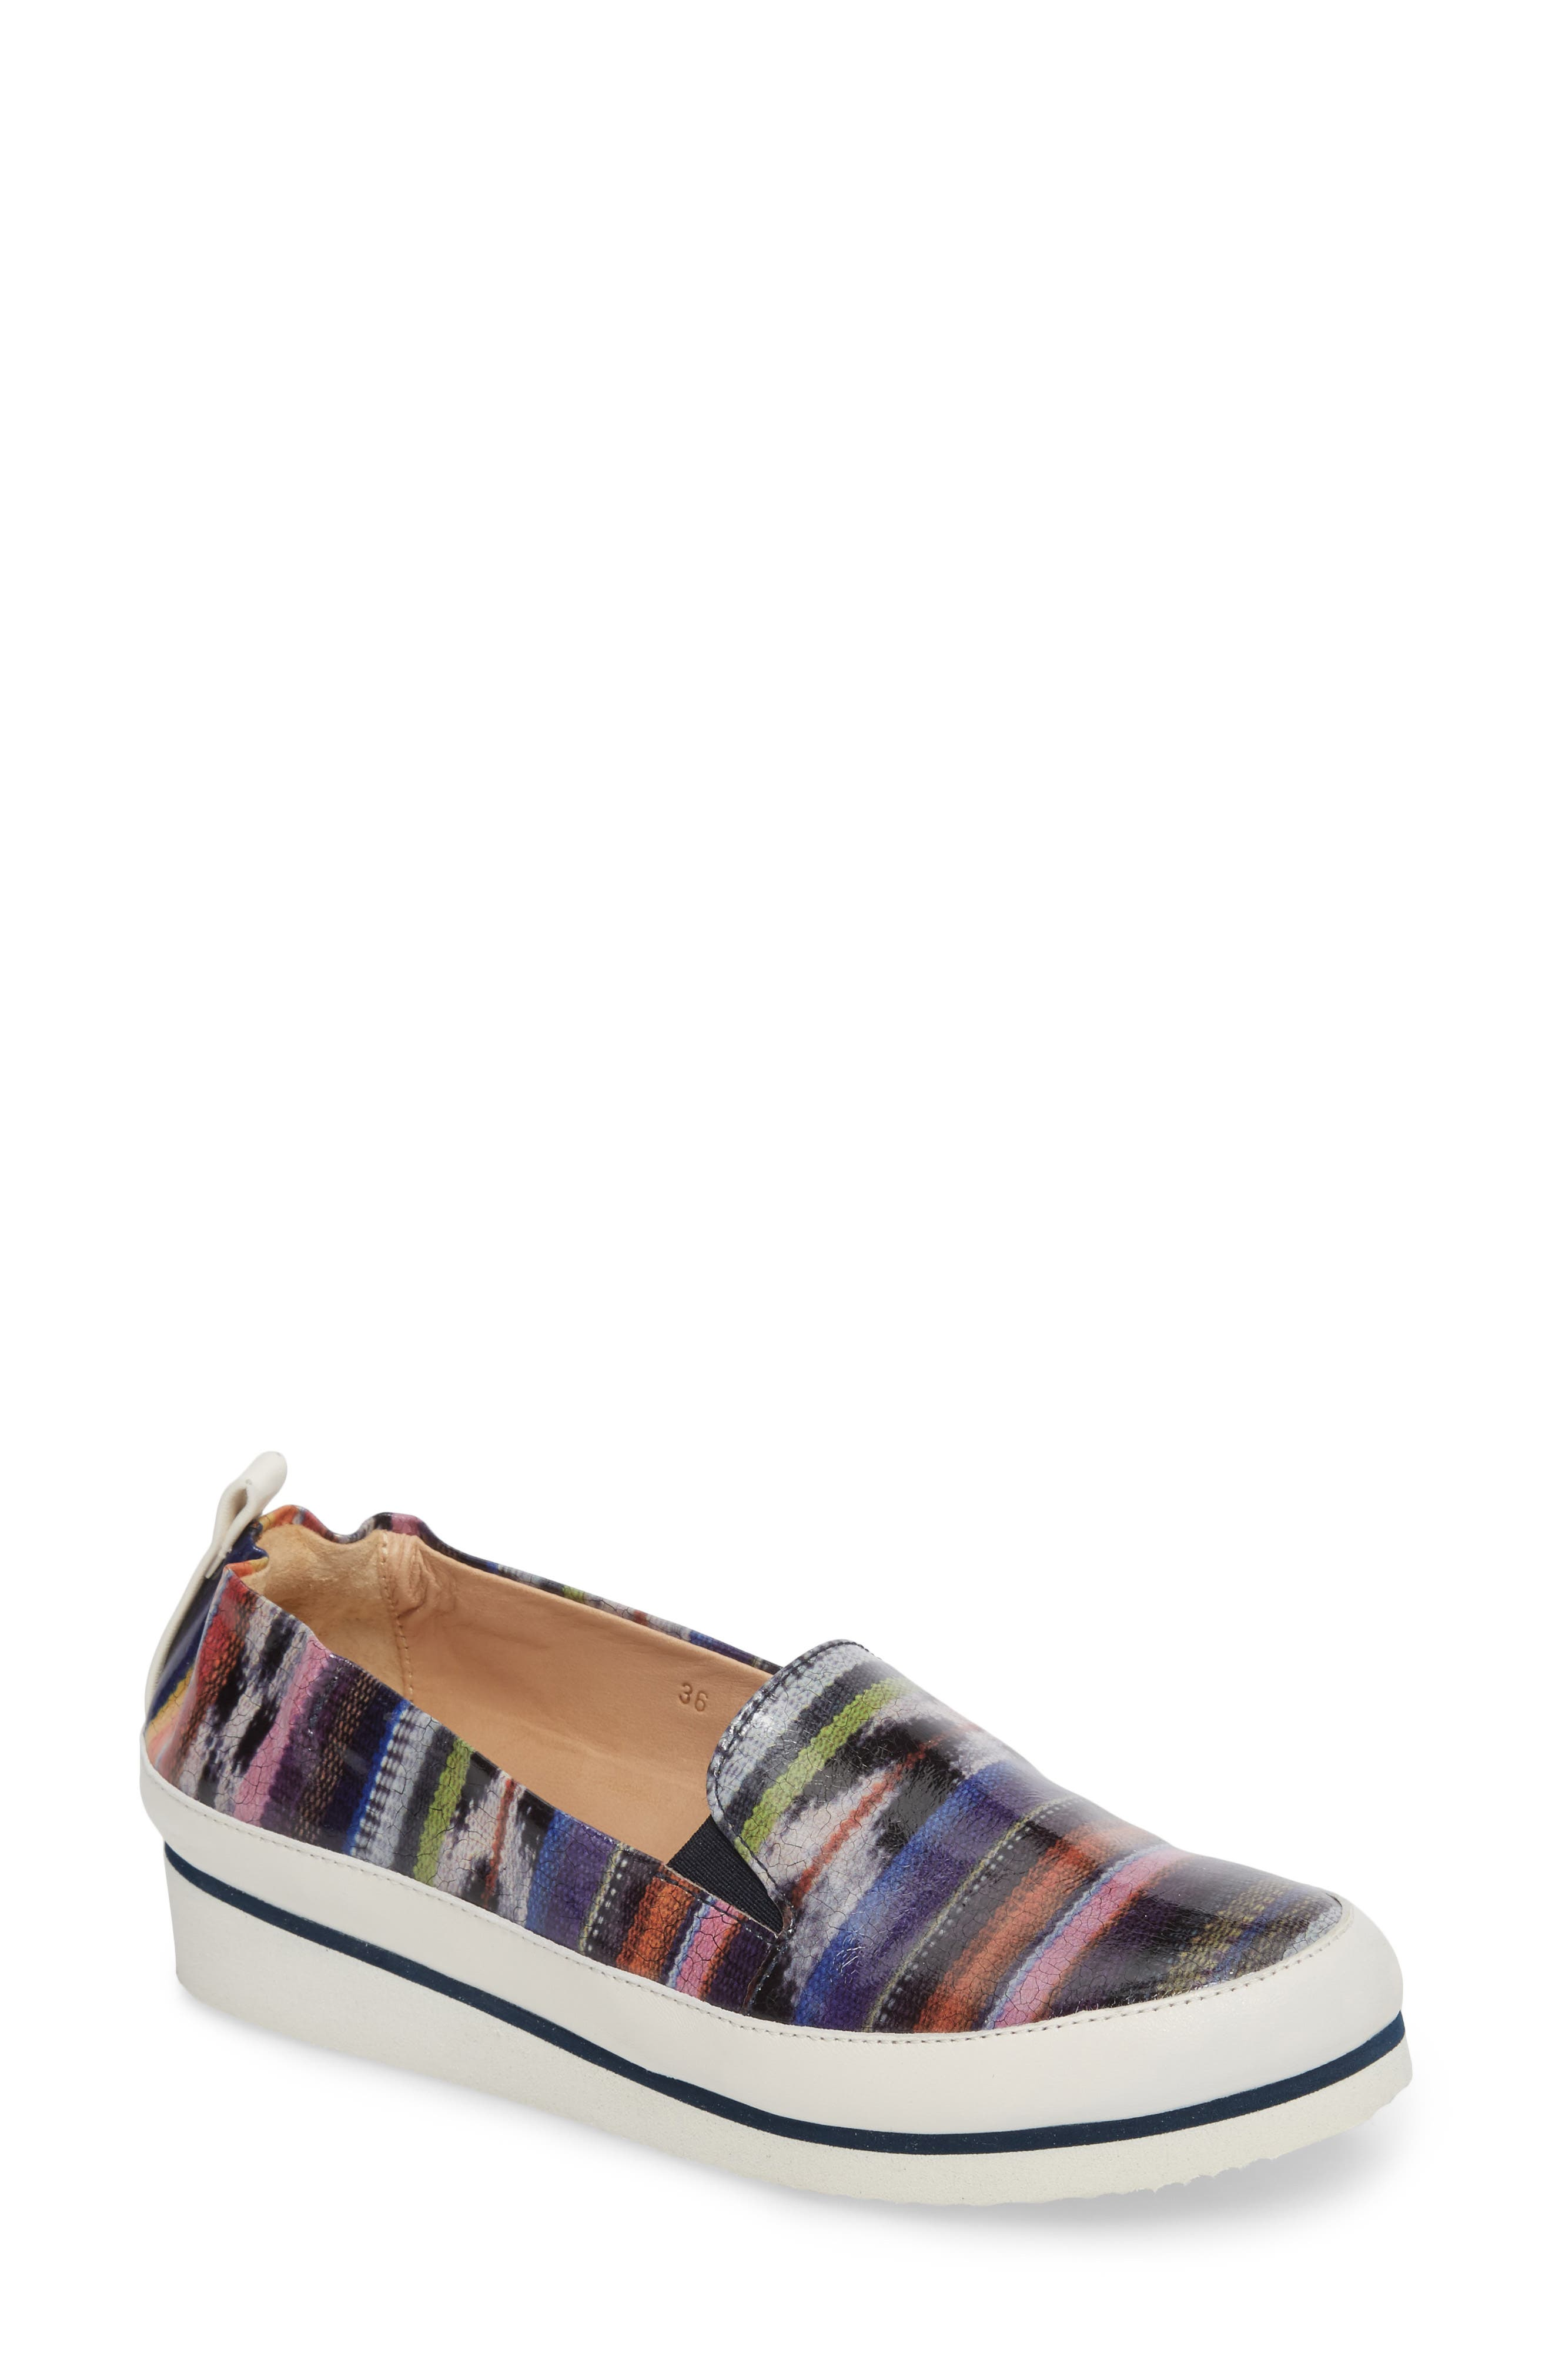 Nell Slip-On Sneaker,                             Main thumbnail 3, color,